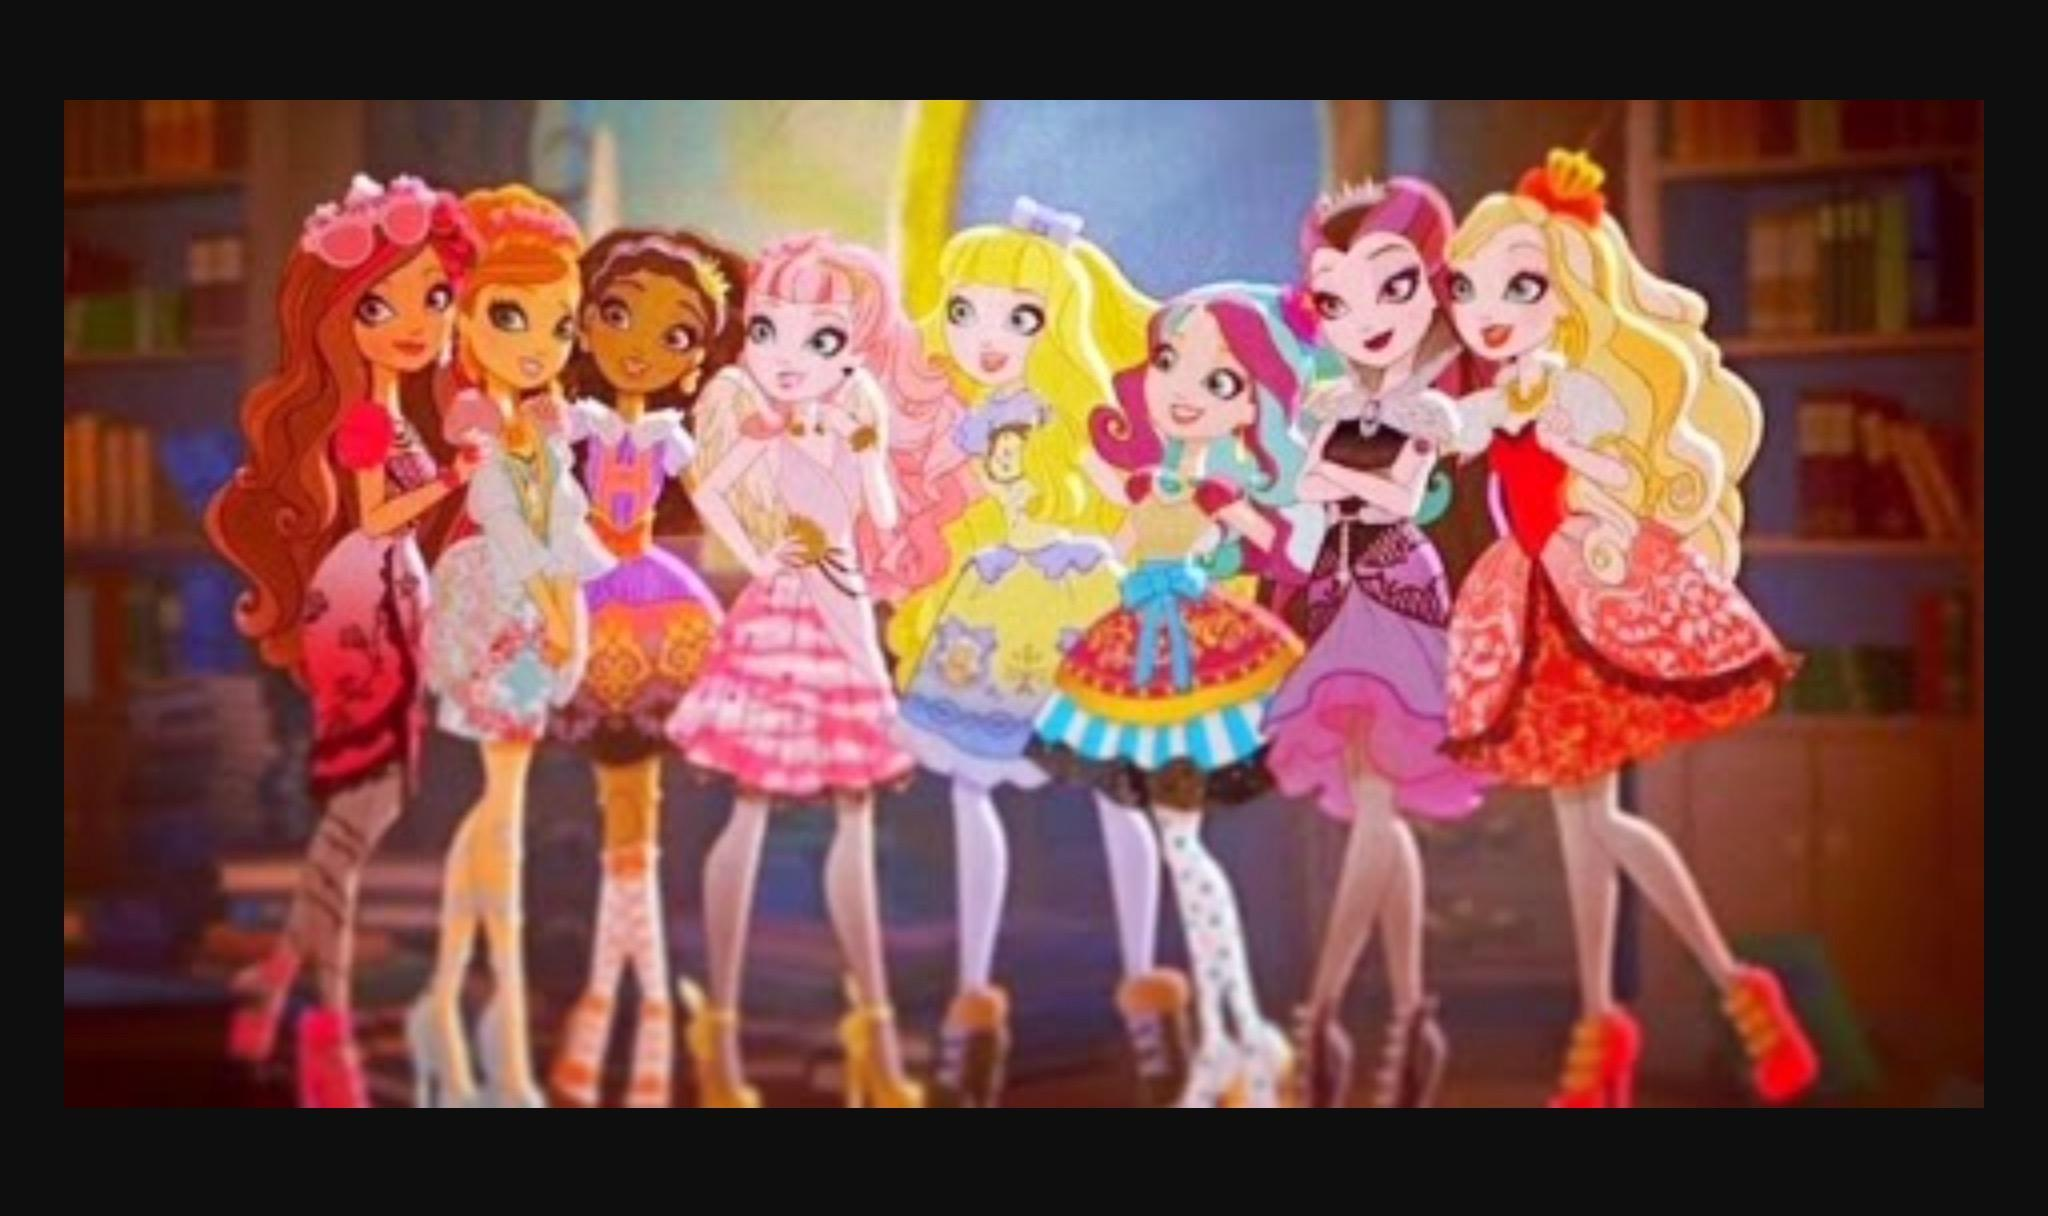 What Ever After High Character Are You? (2)